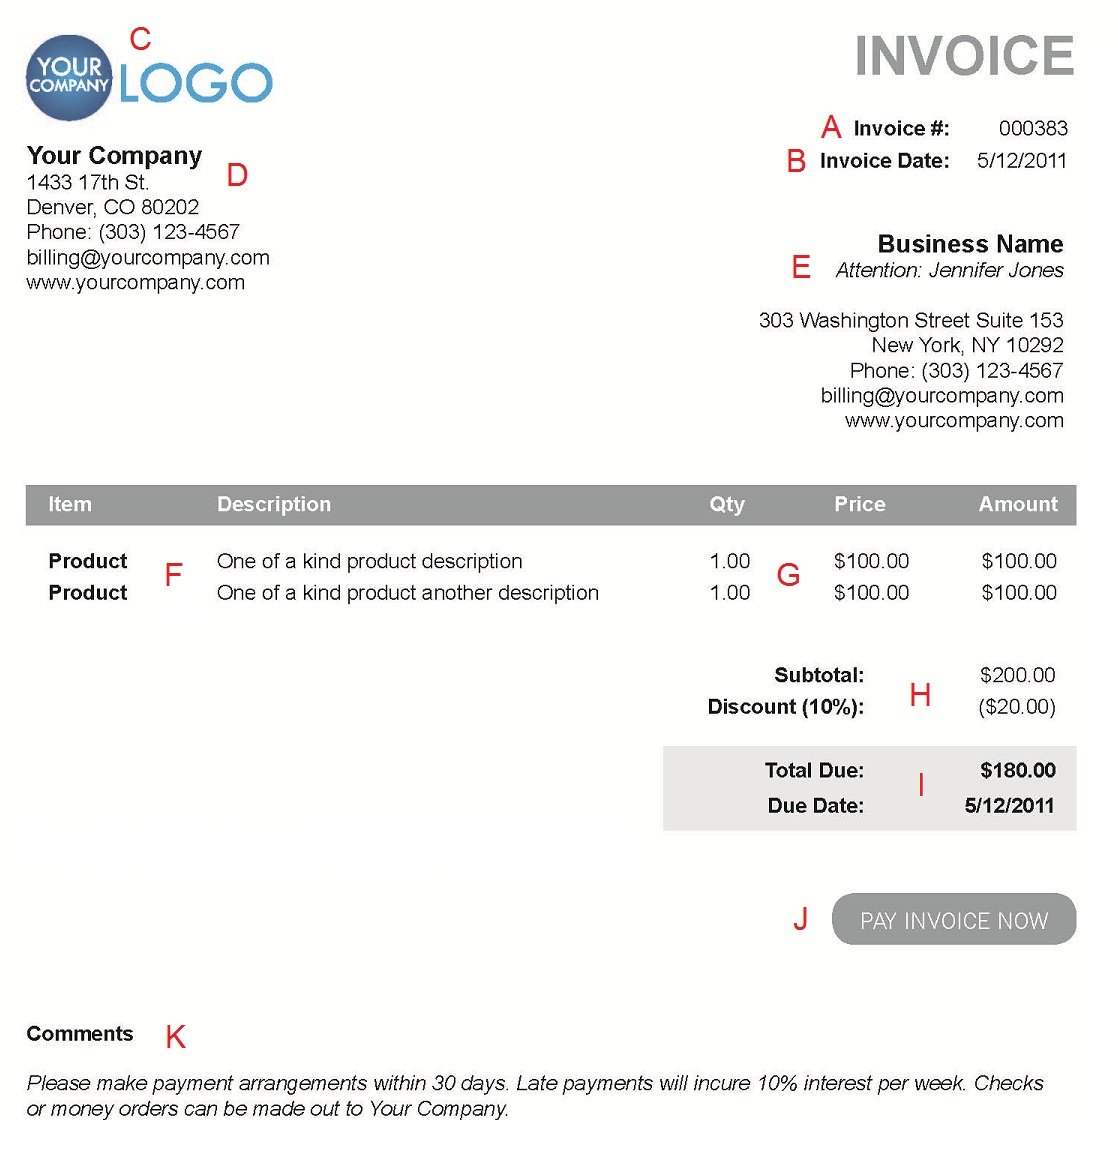 Floobydustus  Terrific The  Different Sections Of An Electronic Payment Invoice With Engaging A  With Beauteous Please Find Attached Invoice For Your Also Sample Of An Invoice Statement In Addition Garage Invoice And Rent A Car Invoice As Well As Customizable Invoice Software Additionally Invoice Statement Example From Paysimplecom With Floobydustus  Engaging The  Different Sections Of An Electronic Payment Invoice With Beauteous A  And Terrific Please Find Attached Invoice For Your Also Sample Of An Invoice Statement In Addition Garage Invoice From Paysimplecom